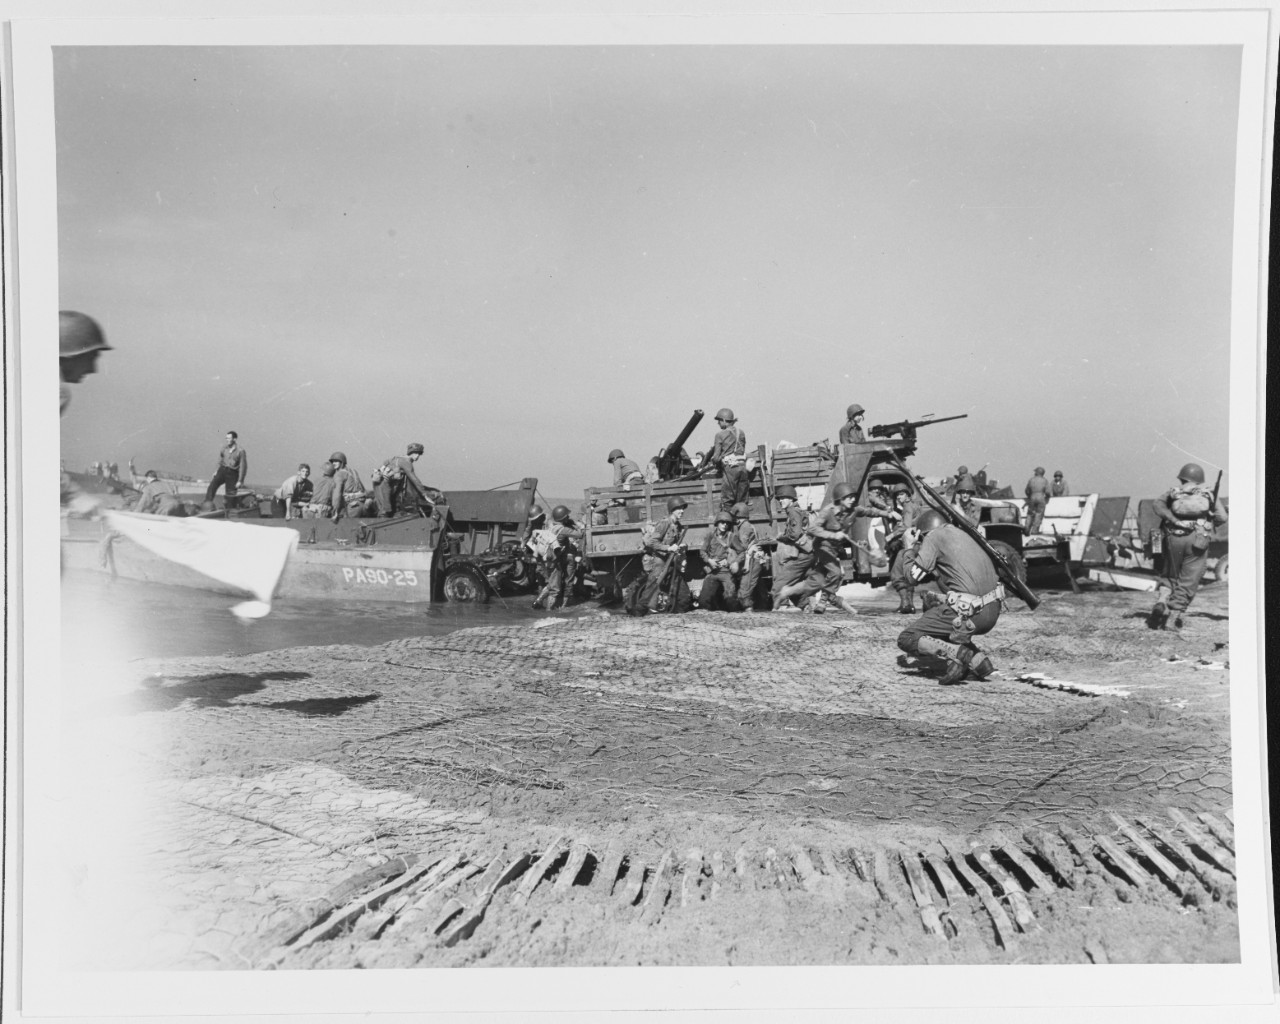 Photo #: 80-G-54600  Salerno Invasion, 1943